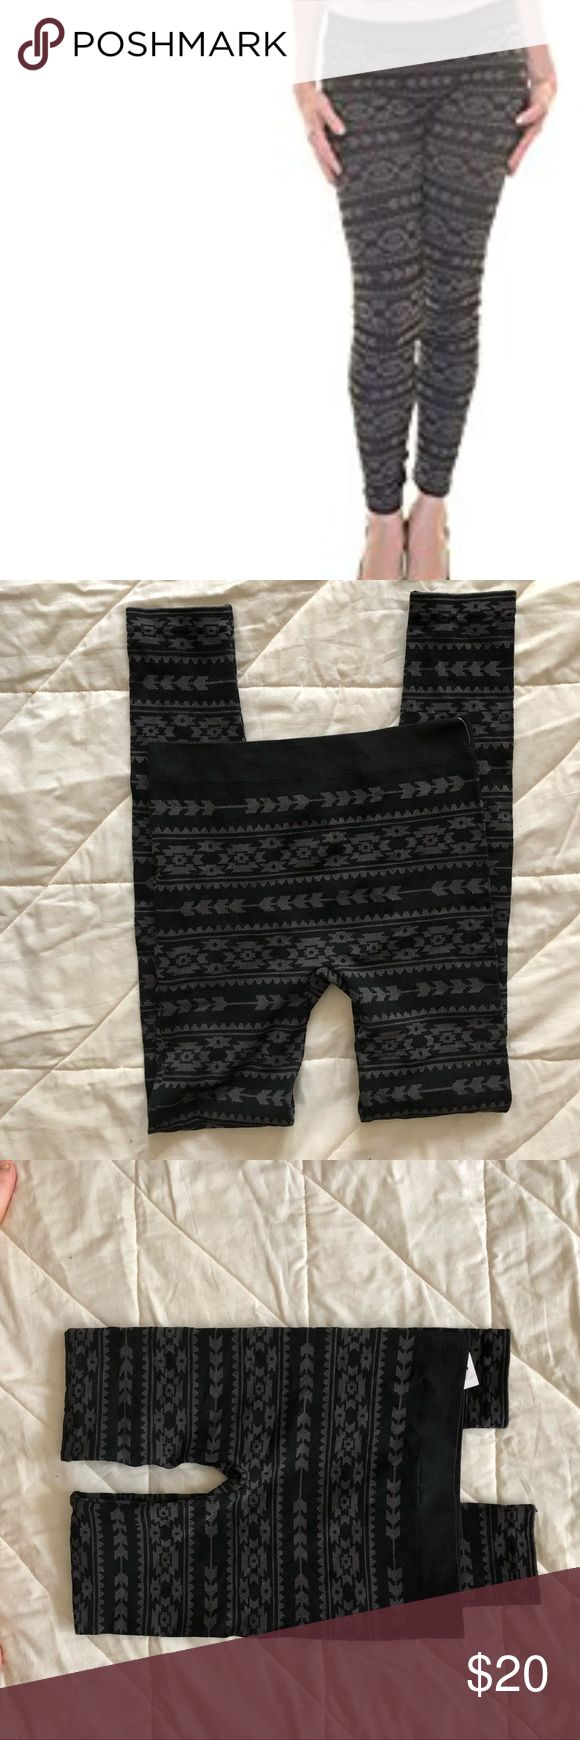 Black grey combo tribal print leggings Tribal print black gray combo leggings. Size S/M material is 64% nylon 28% polyester 8% spandex Brand Ultra flirt via Macy's Measurements: use size chart 🚫modeling  🚫trades (askers will be ignored) or lowballing  ✅ will consider offers made through BLUE offer button.  LB ✅ great bundle Macy's Pants